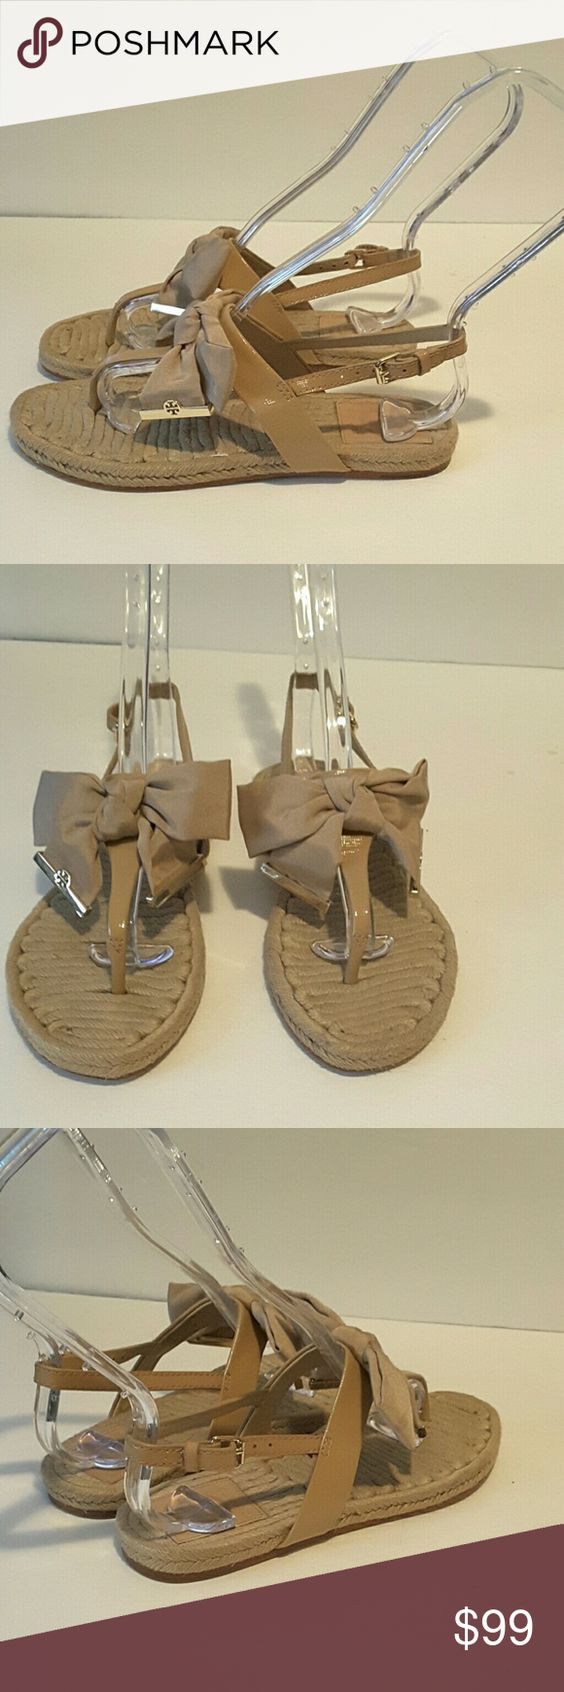 Tory Burch Penny sandals. Tory Burch Penny sandals in beige patent leather  with beautiful  nylon bow with TB logo. In excellent  lightly used condition. Tory Burch Shoes Sandals